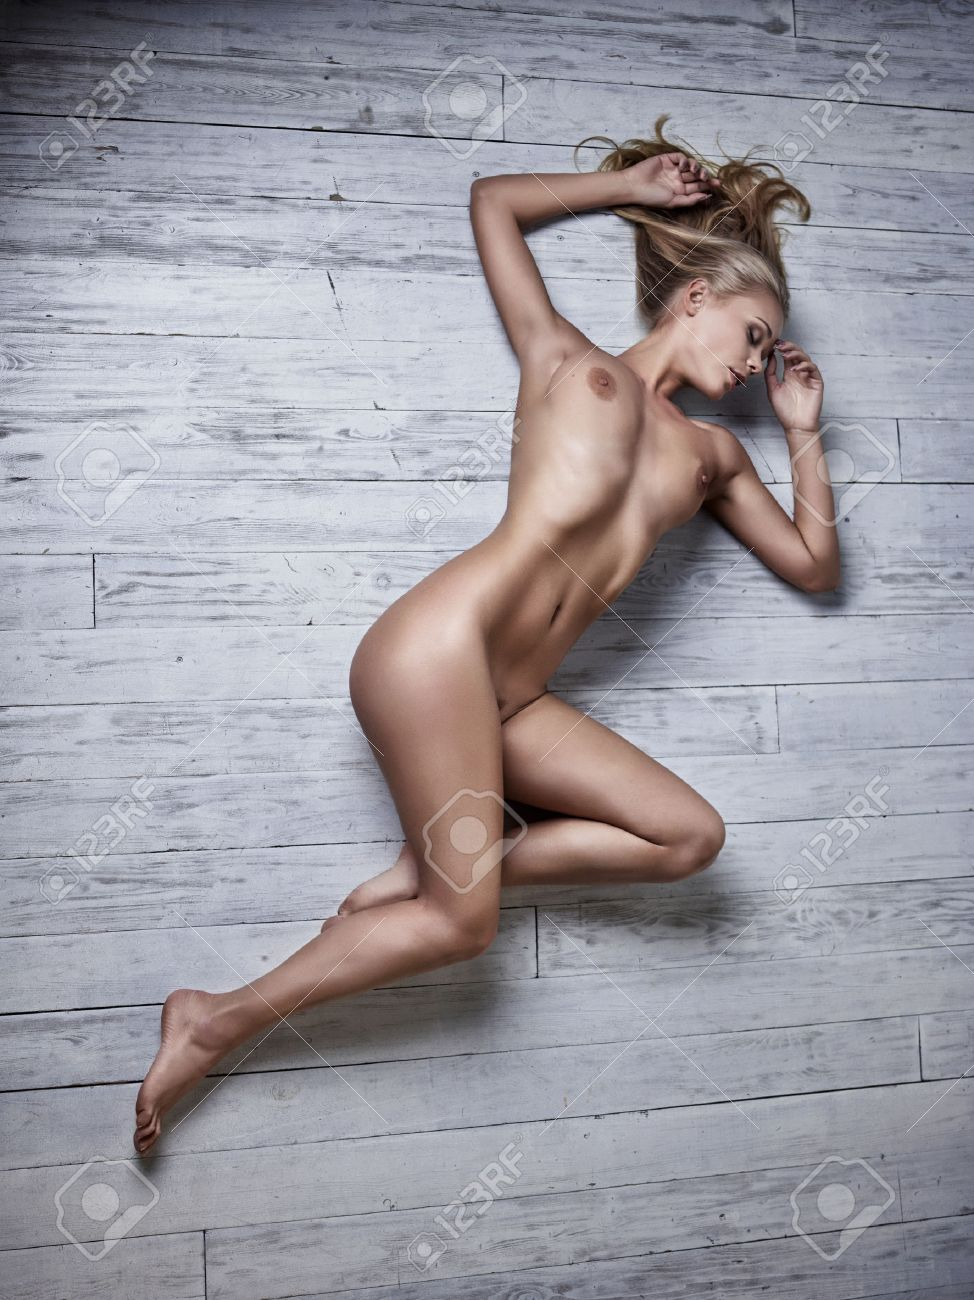 9/9/18-9/15/18 62966566-sexy-nude-woman-laying-down-on-a-white-wooden-floor-artistic-photo-